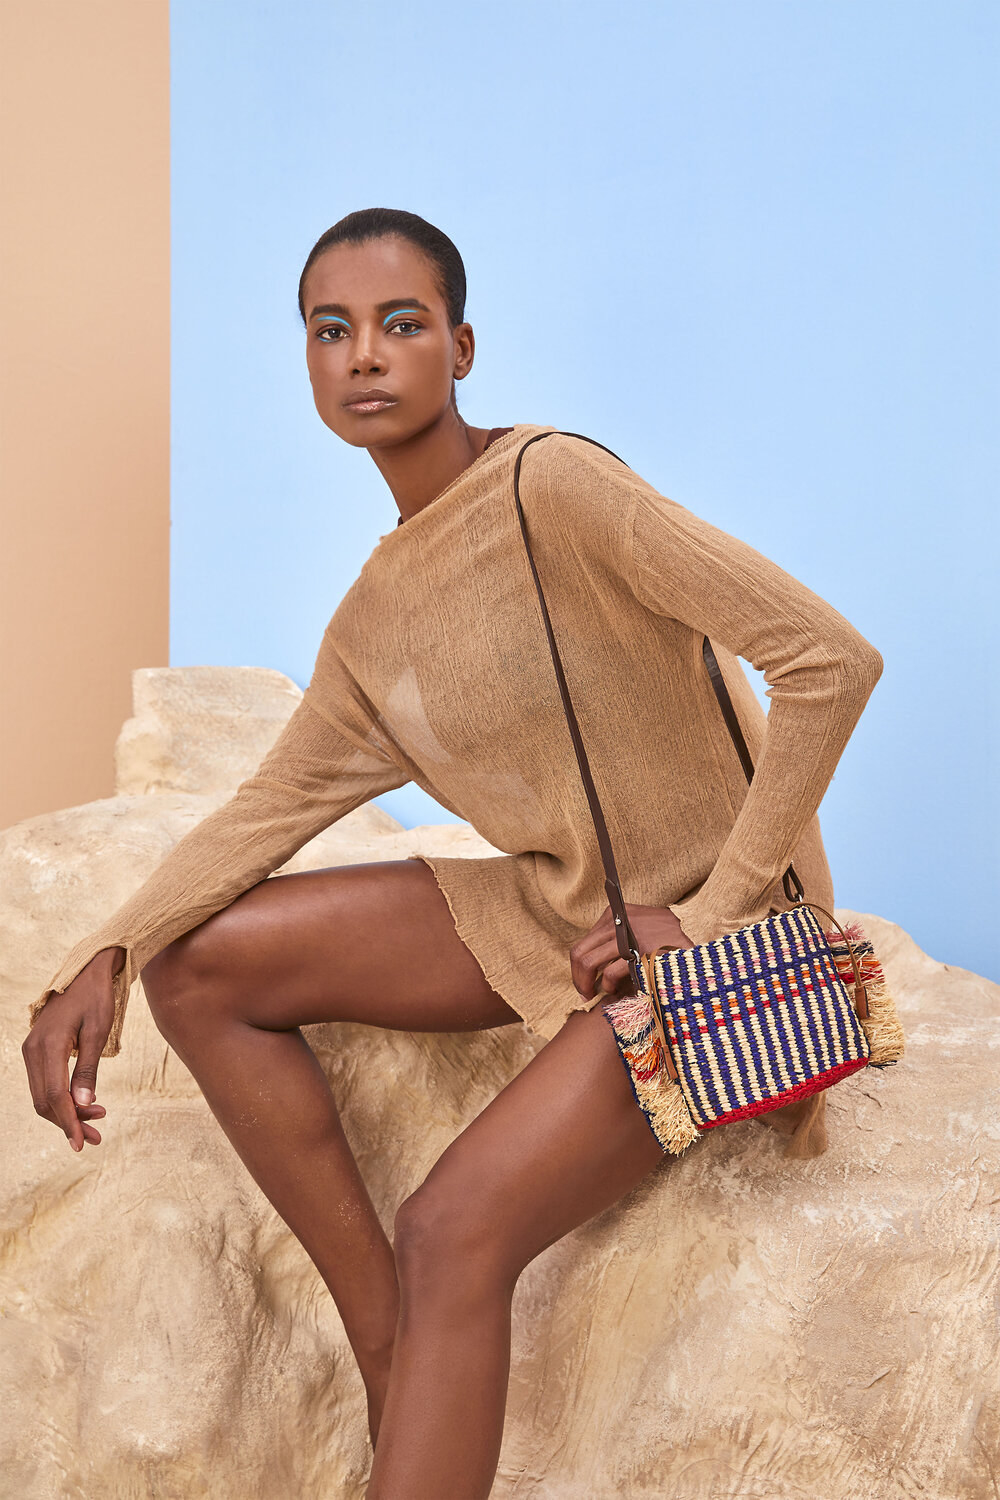 Model wearing the light tan woven bag with navy stripes and ruffles down the side